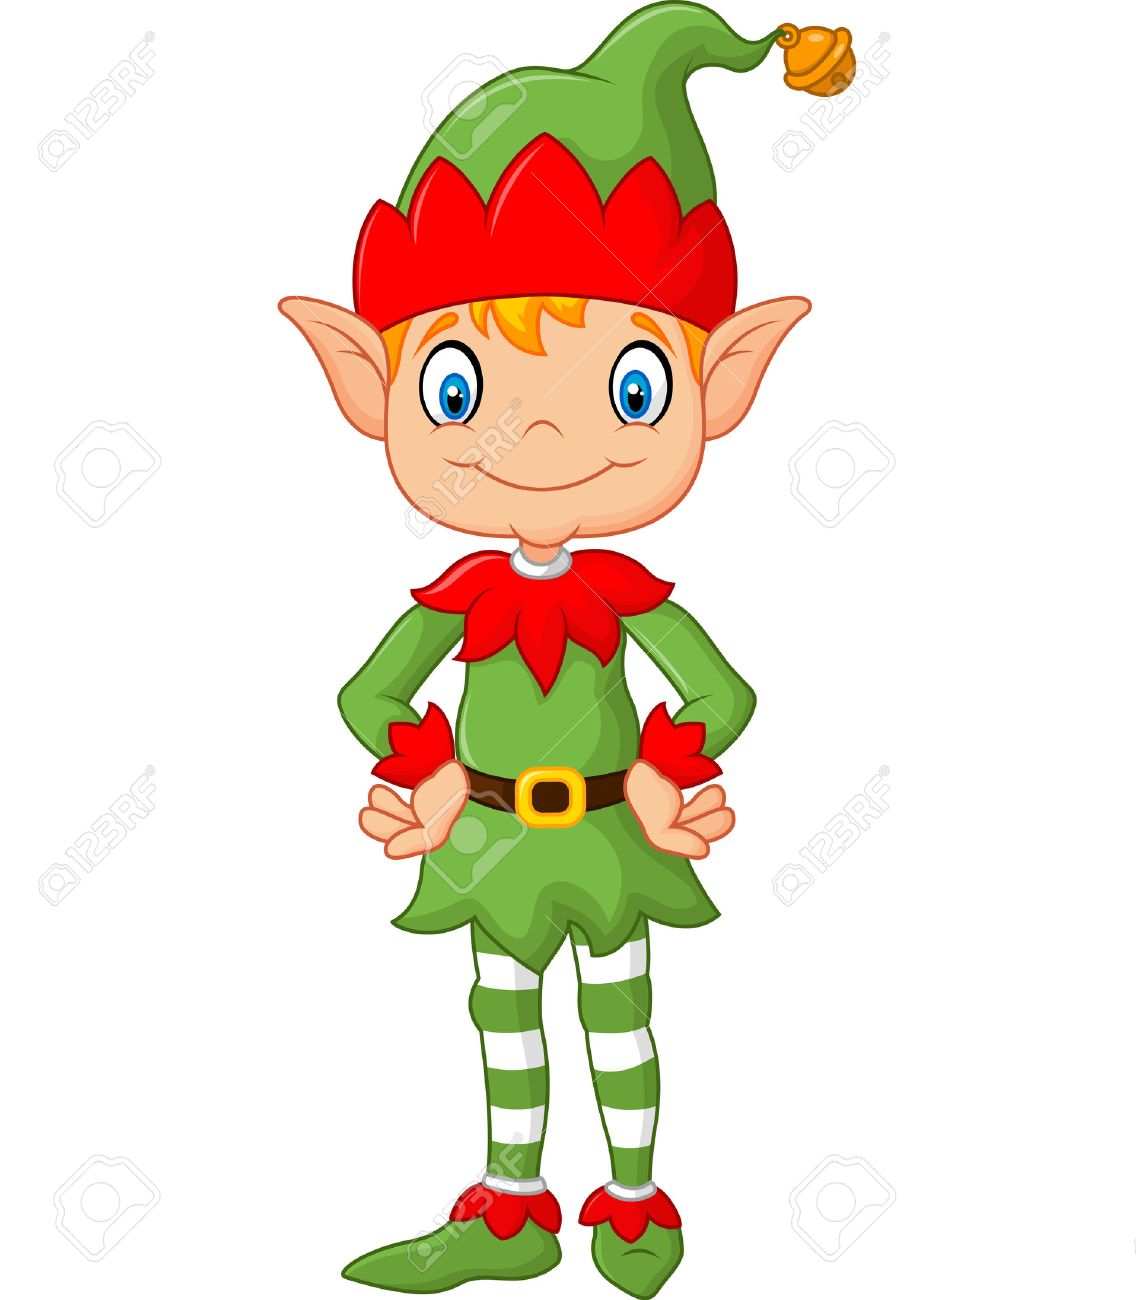 12 779 christmas elf cliparts stock vector and royalty free rh 123rf com free christmas elf clipart images